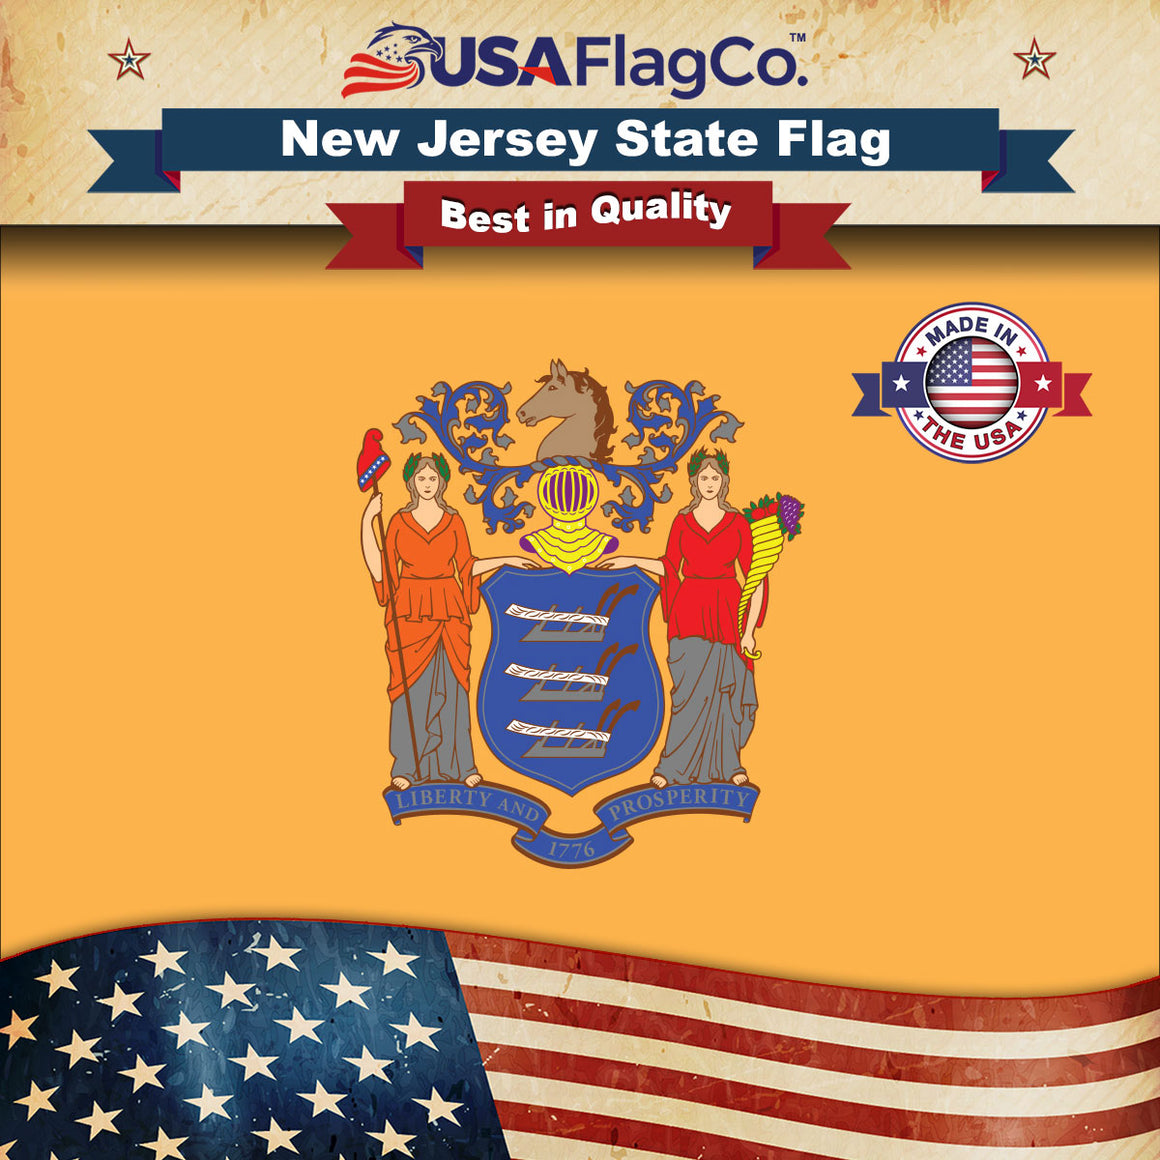 New Jersey Flag by USA Flag Co.